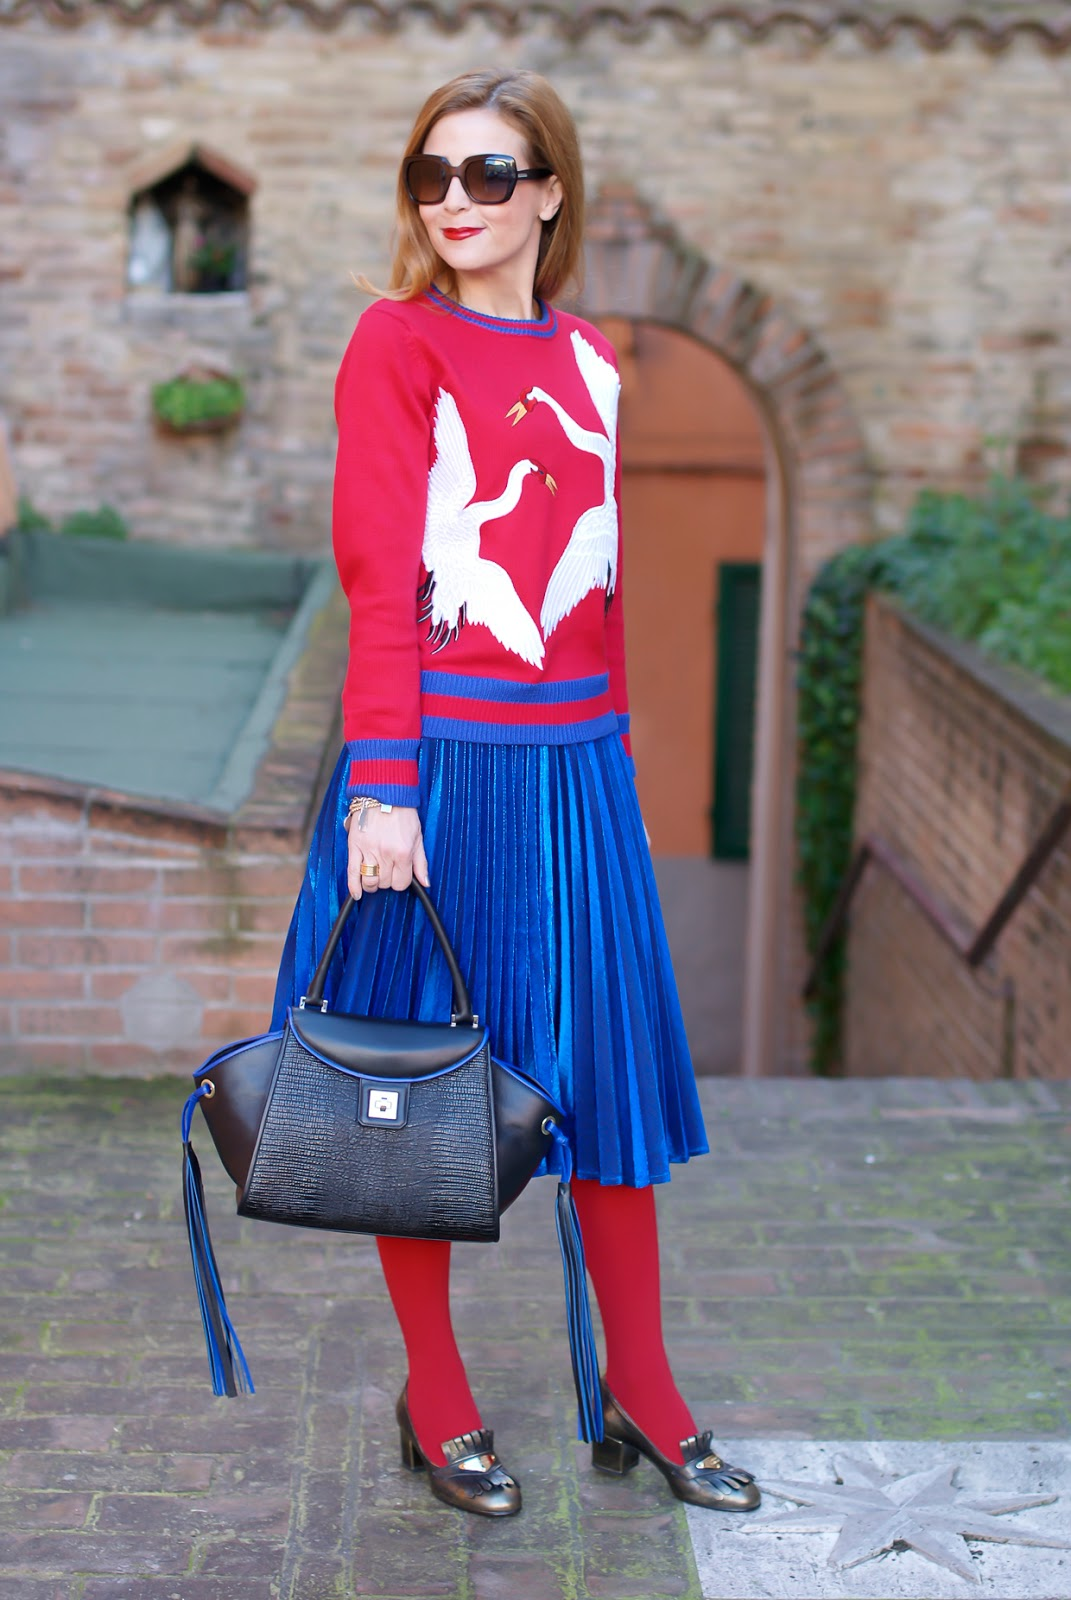 Dezzal bird embroidered sweater, metallic pleated skirt and Iaya Asciani Paris bag on Fashion and Cookies fashion blog, fashion blogger style